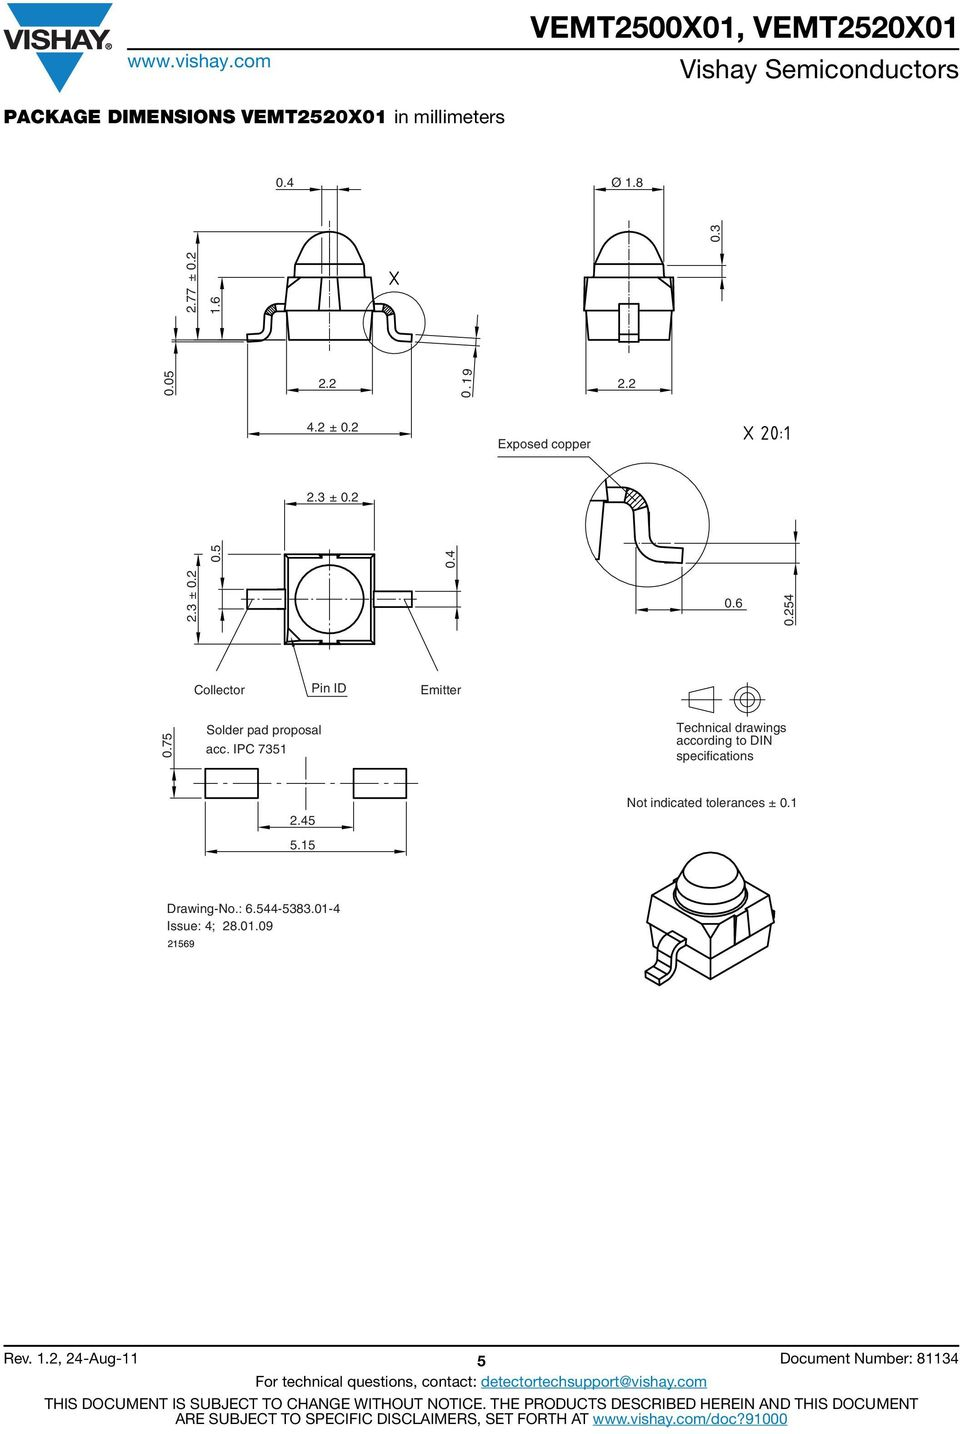 IPC 7351 Technical drawings according to DIN specifications 2.45 5.